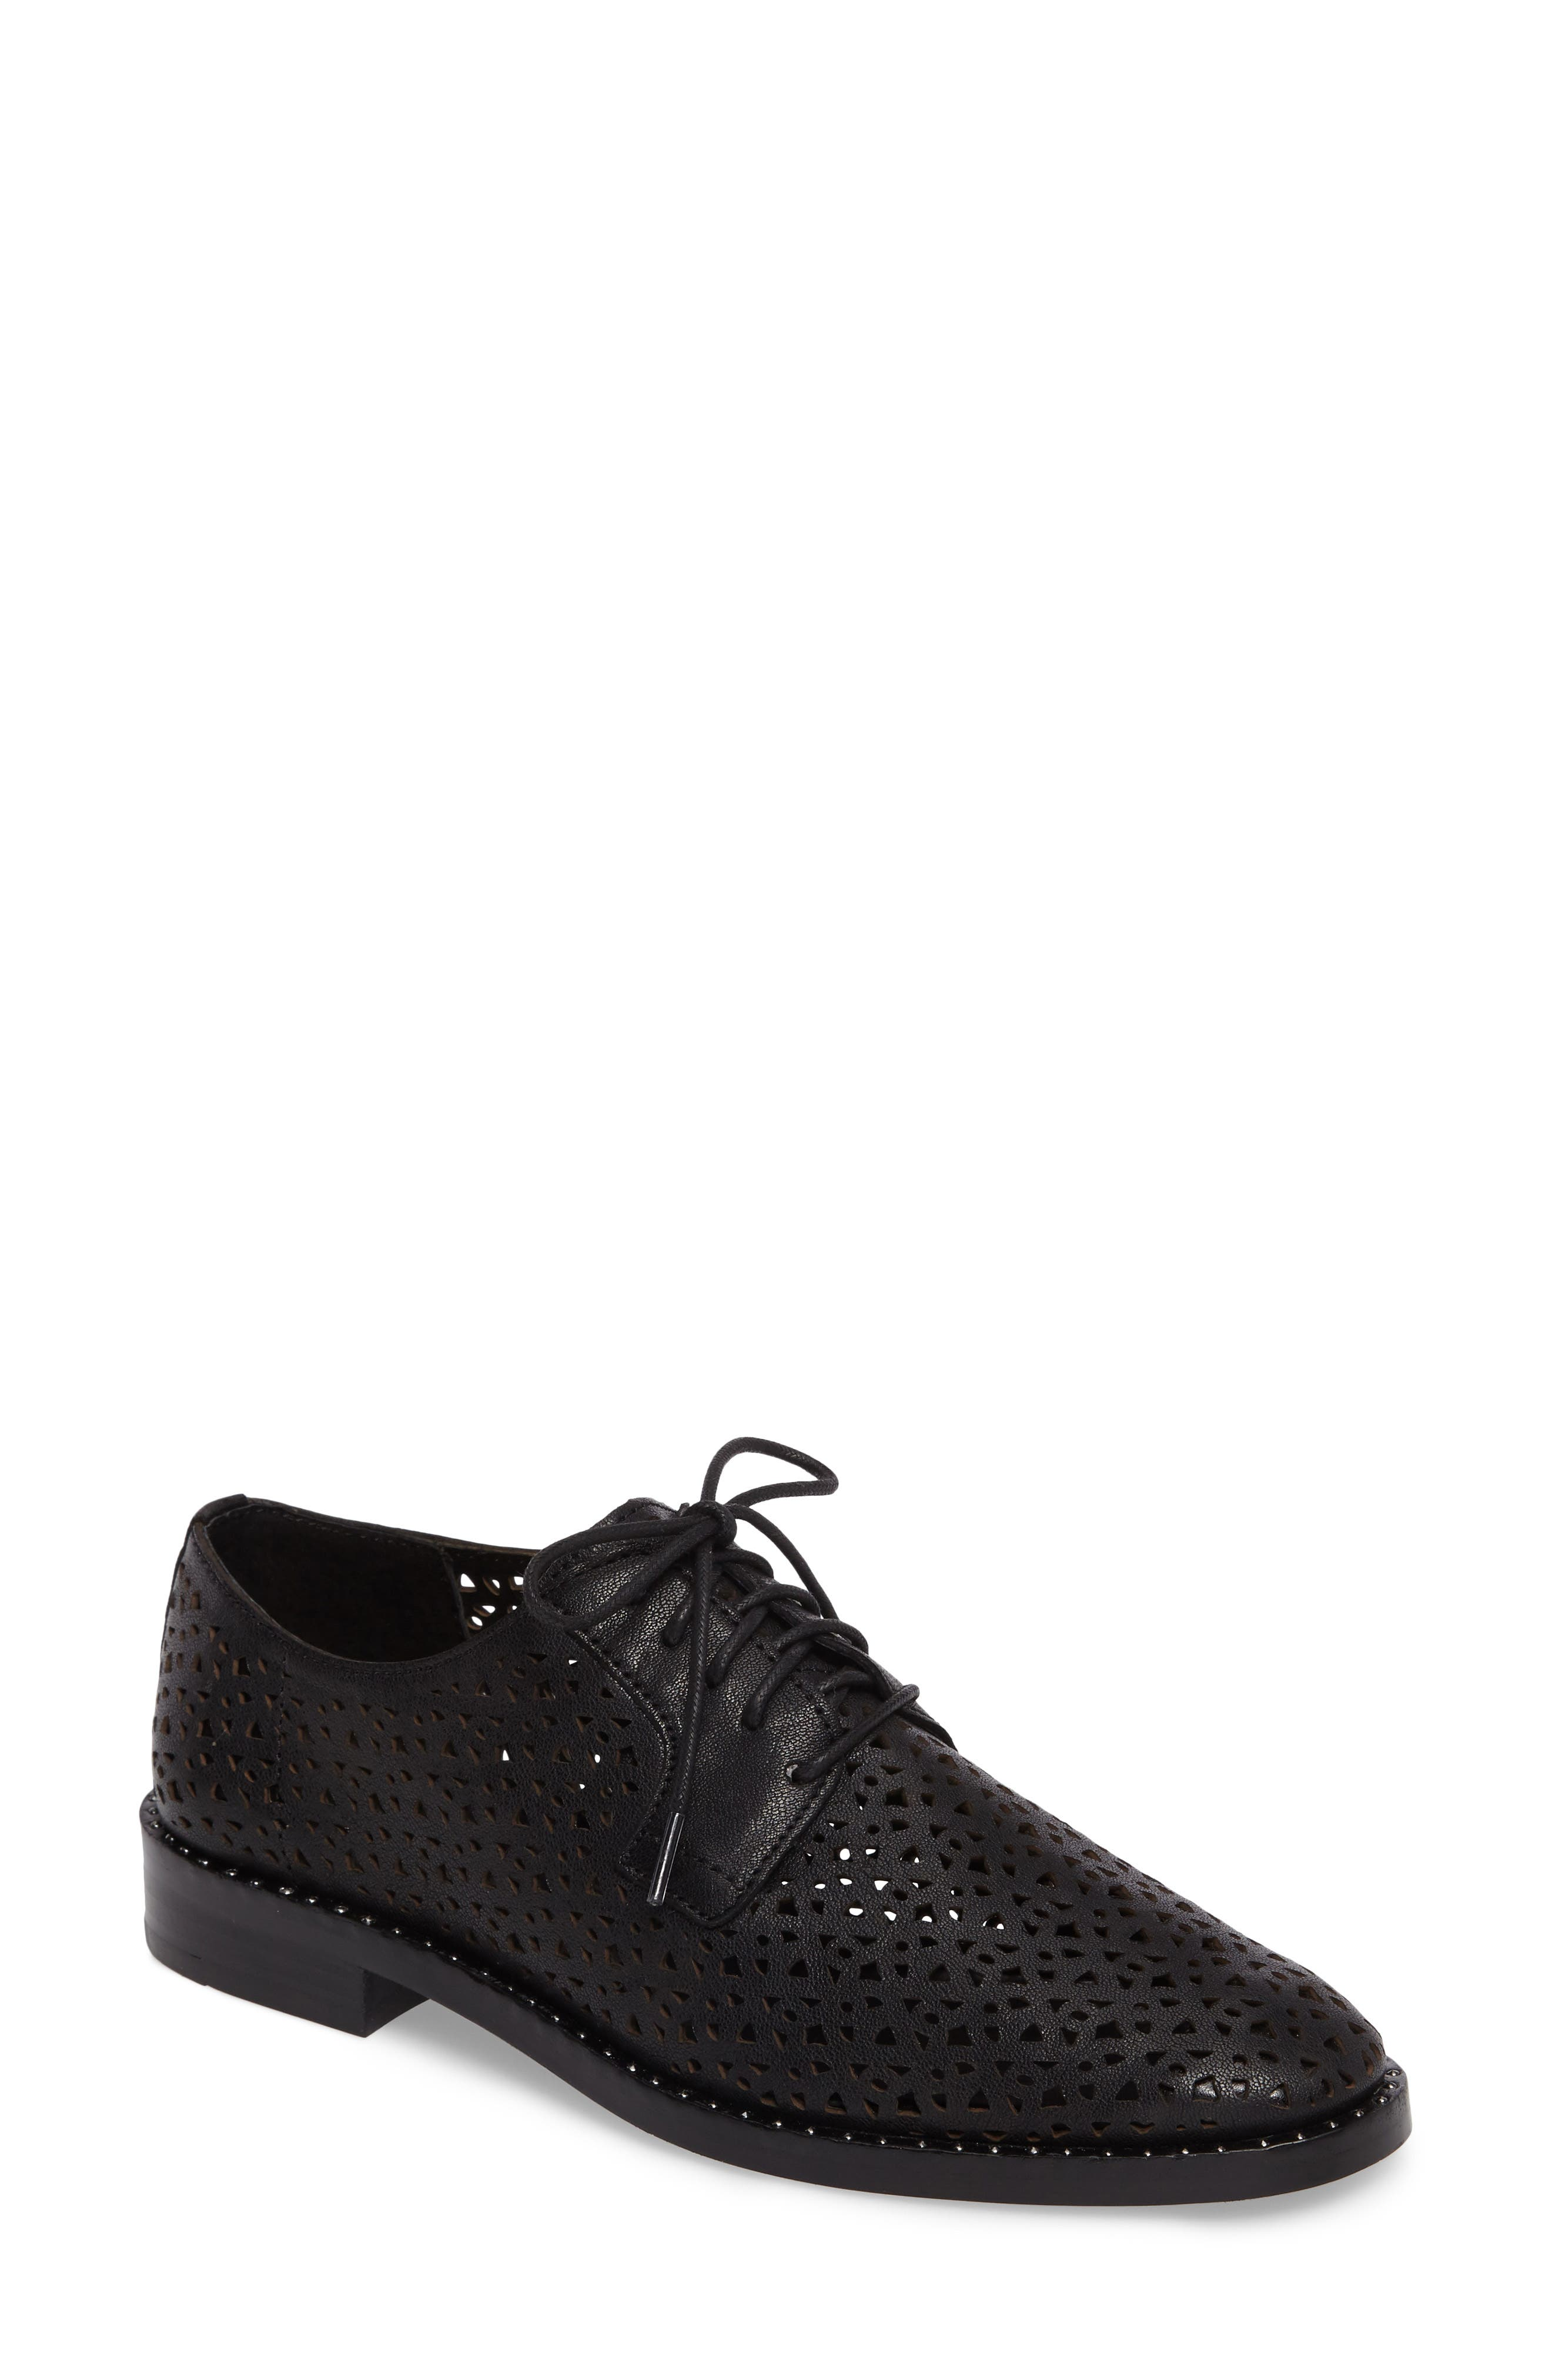 Alternate Image 1 Selected - Vince Camuto Lesta Geo Perforated Oxford (Women)